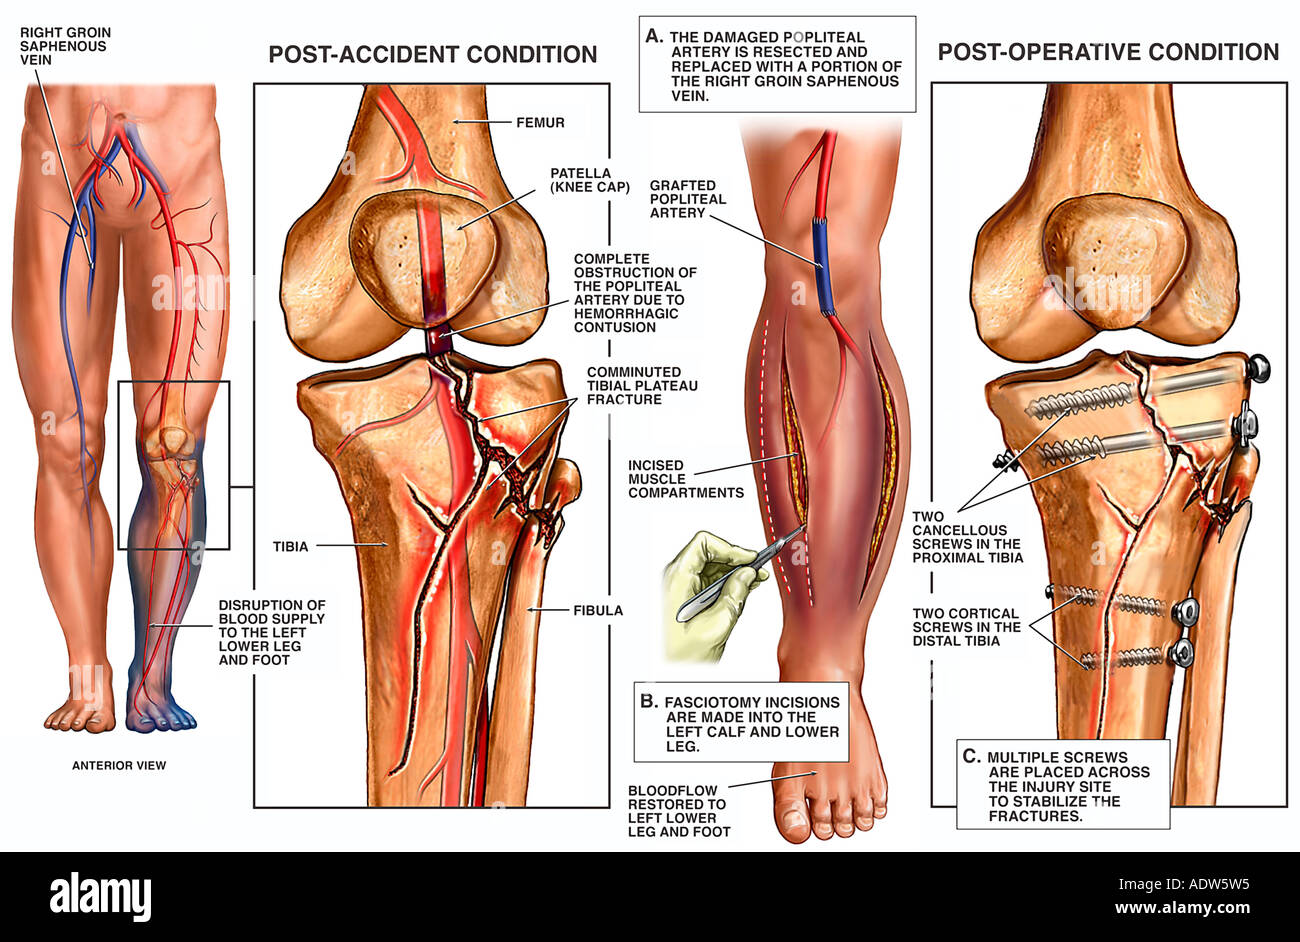 Knee injury tibial plateau fractures with fixation surgery stock knee injury tibial plateau fractures with fixation surgery ccuart Image collections